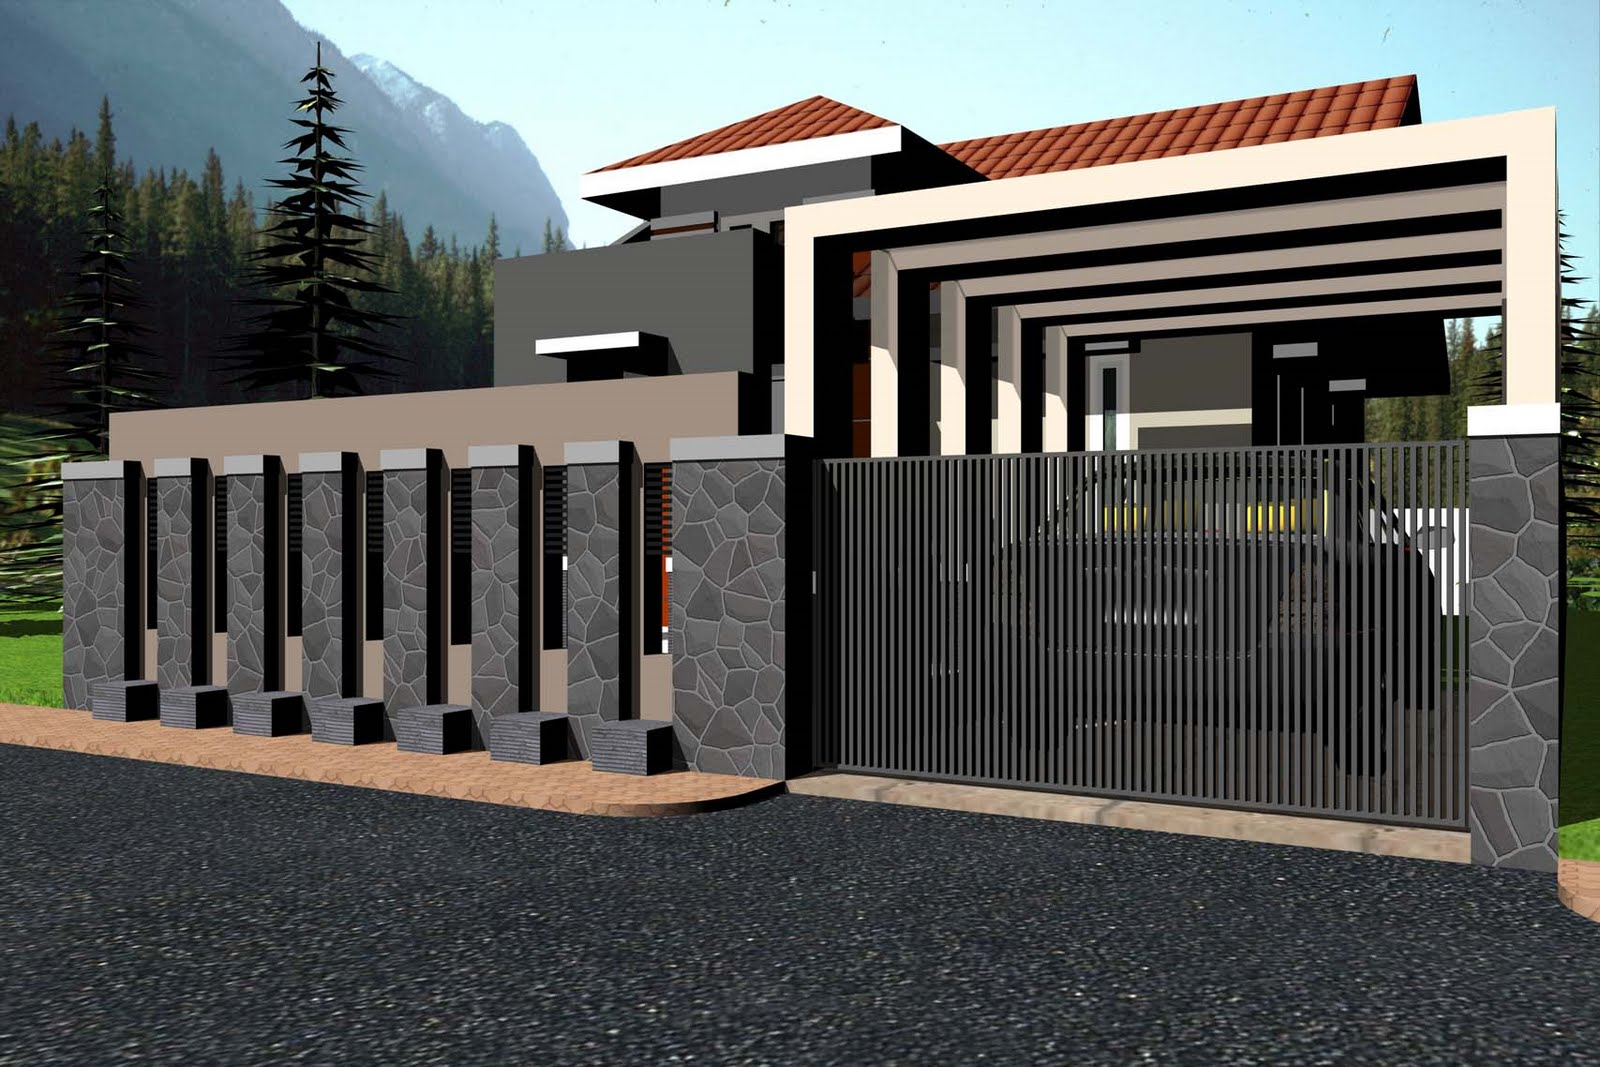 House Fence Designs This minimalist house fence designs read article workwithnaturefo